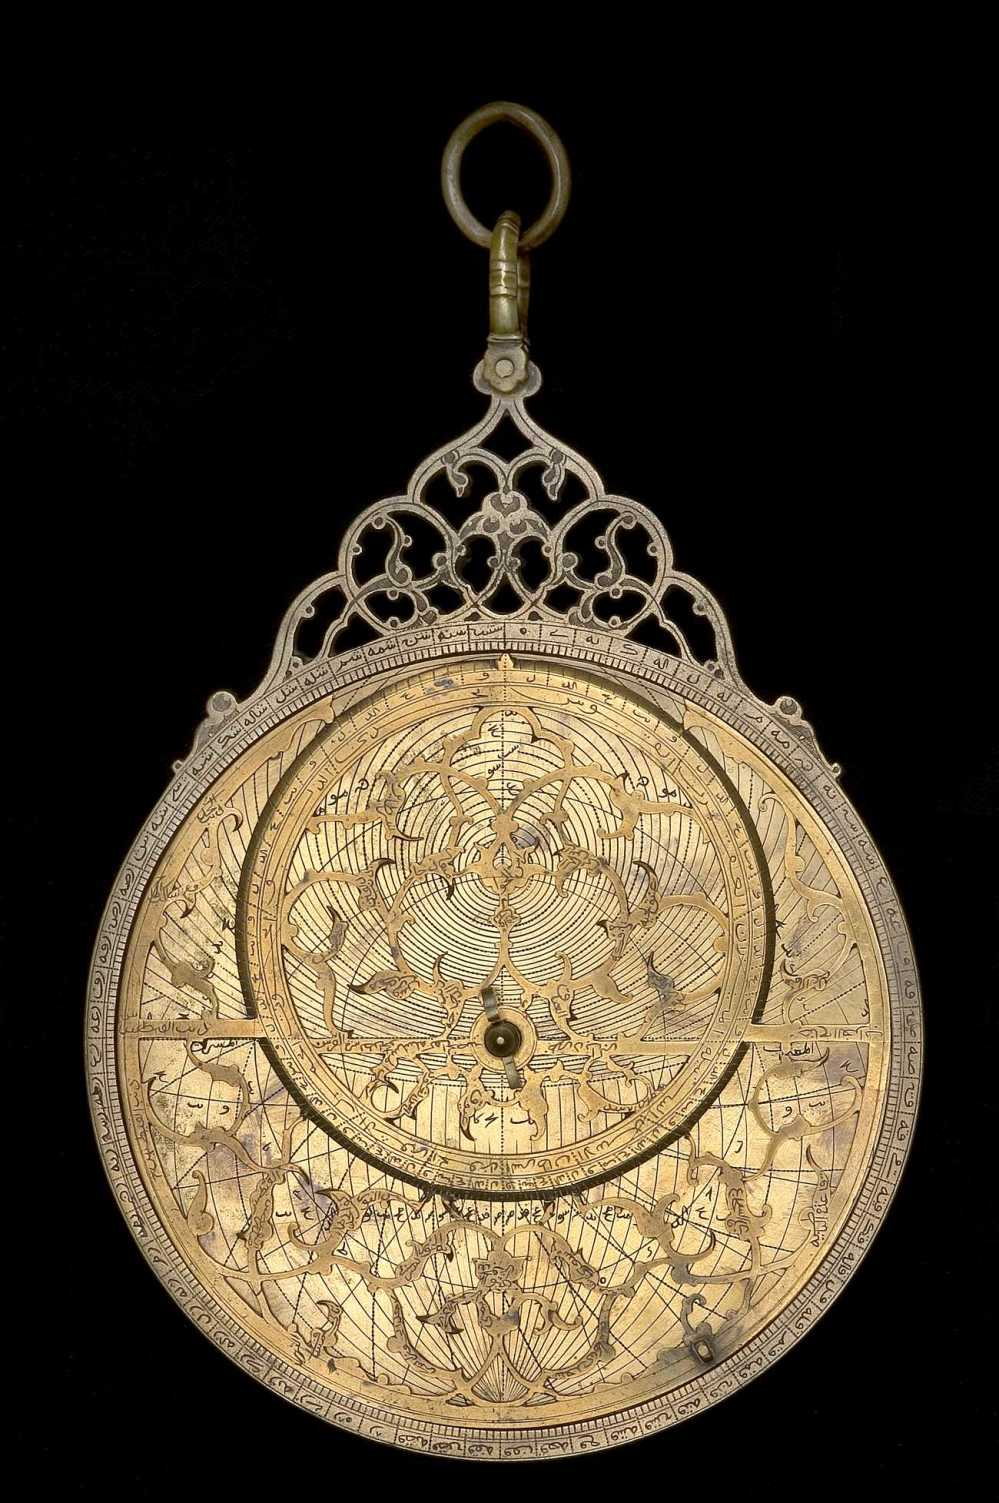 preview image for Astrolabe, by Muhammad Muqim, Lahore, 1643/4